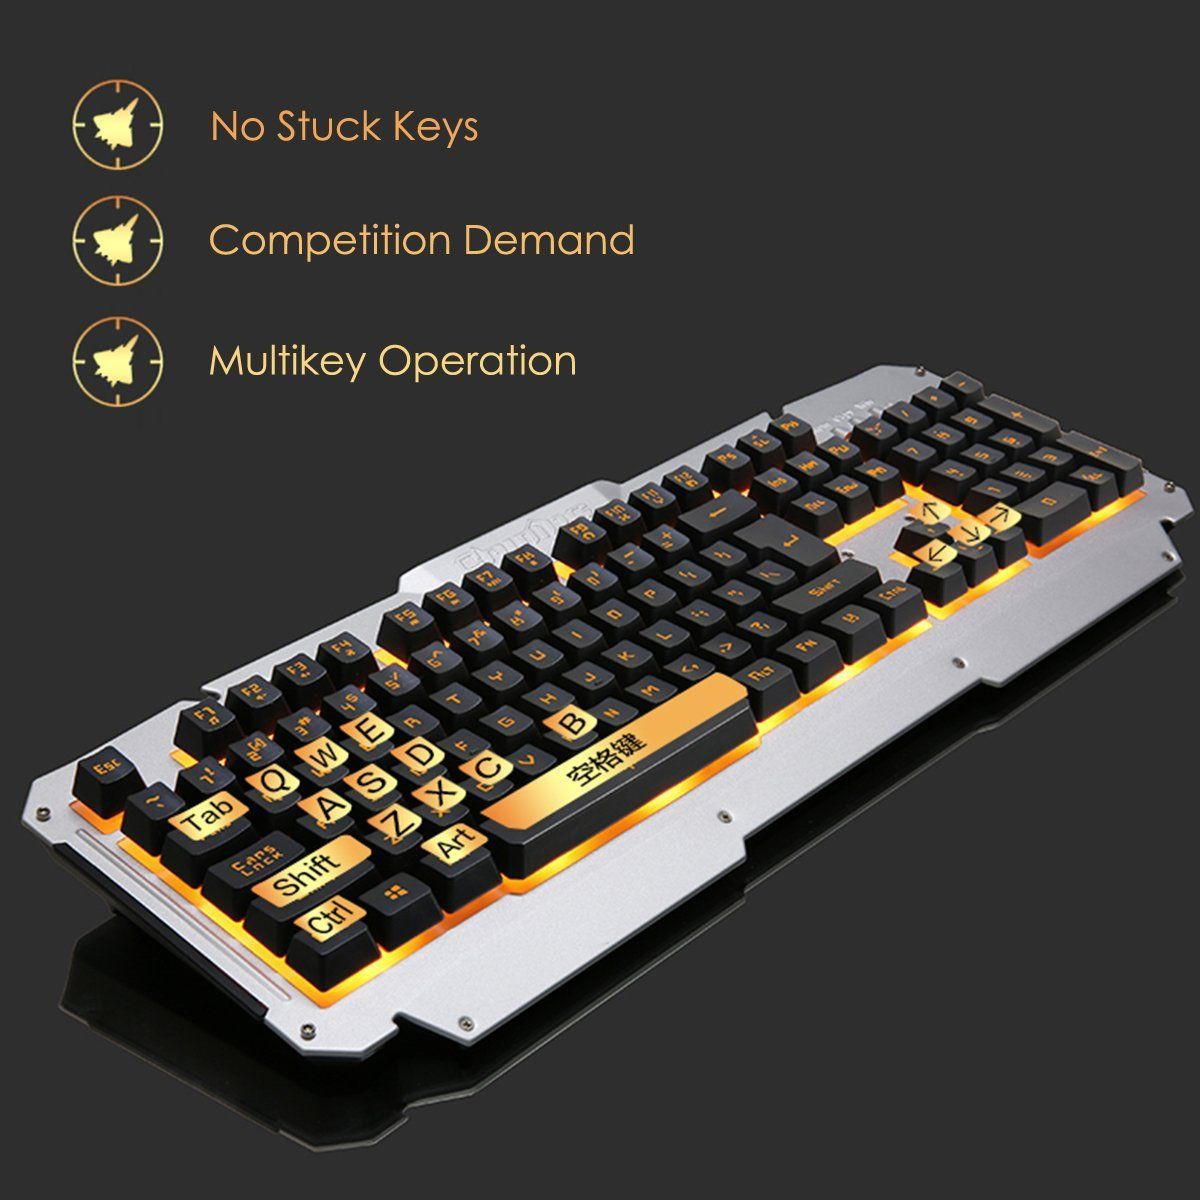 USB Wired Yellow LED Backlight Colorful Mechanical Handfeel Gaming Keyboard Mouse Headphone Combo